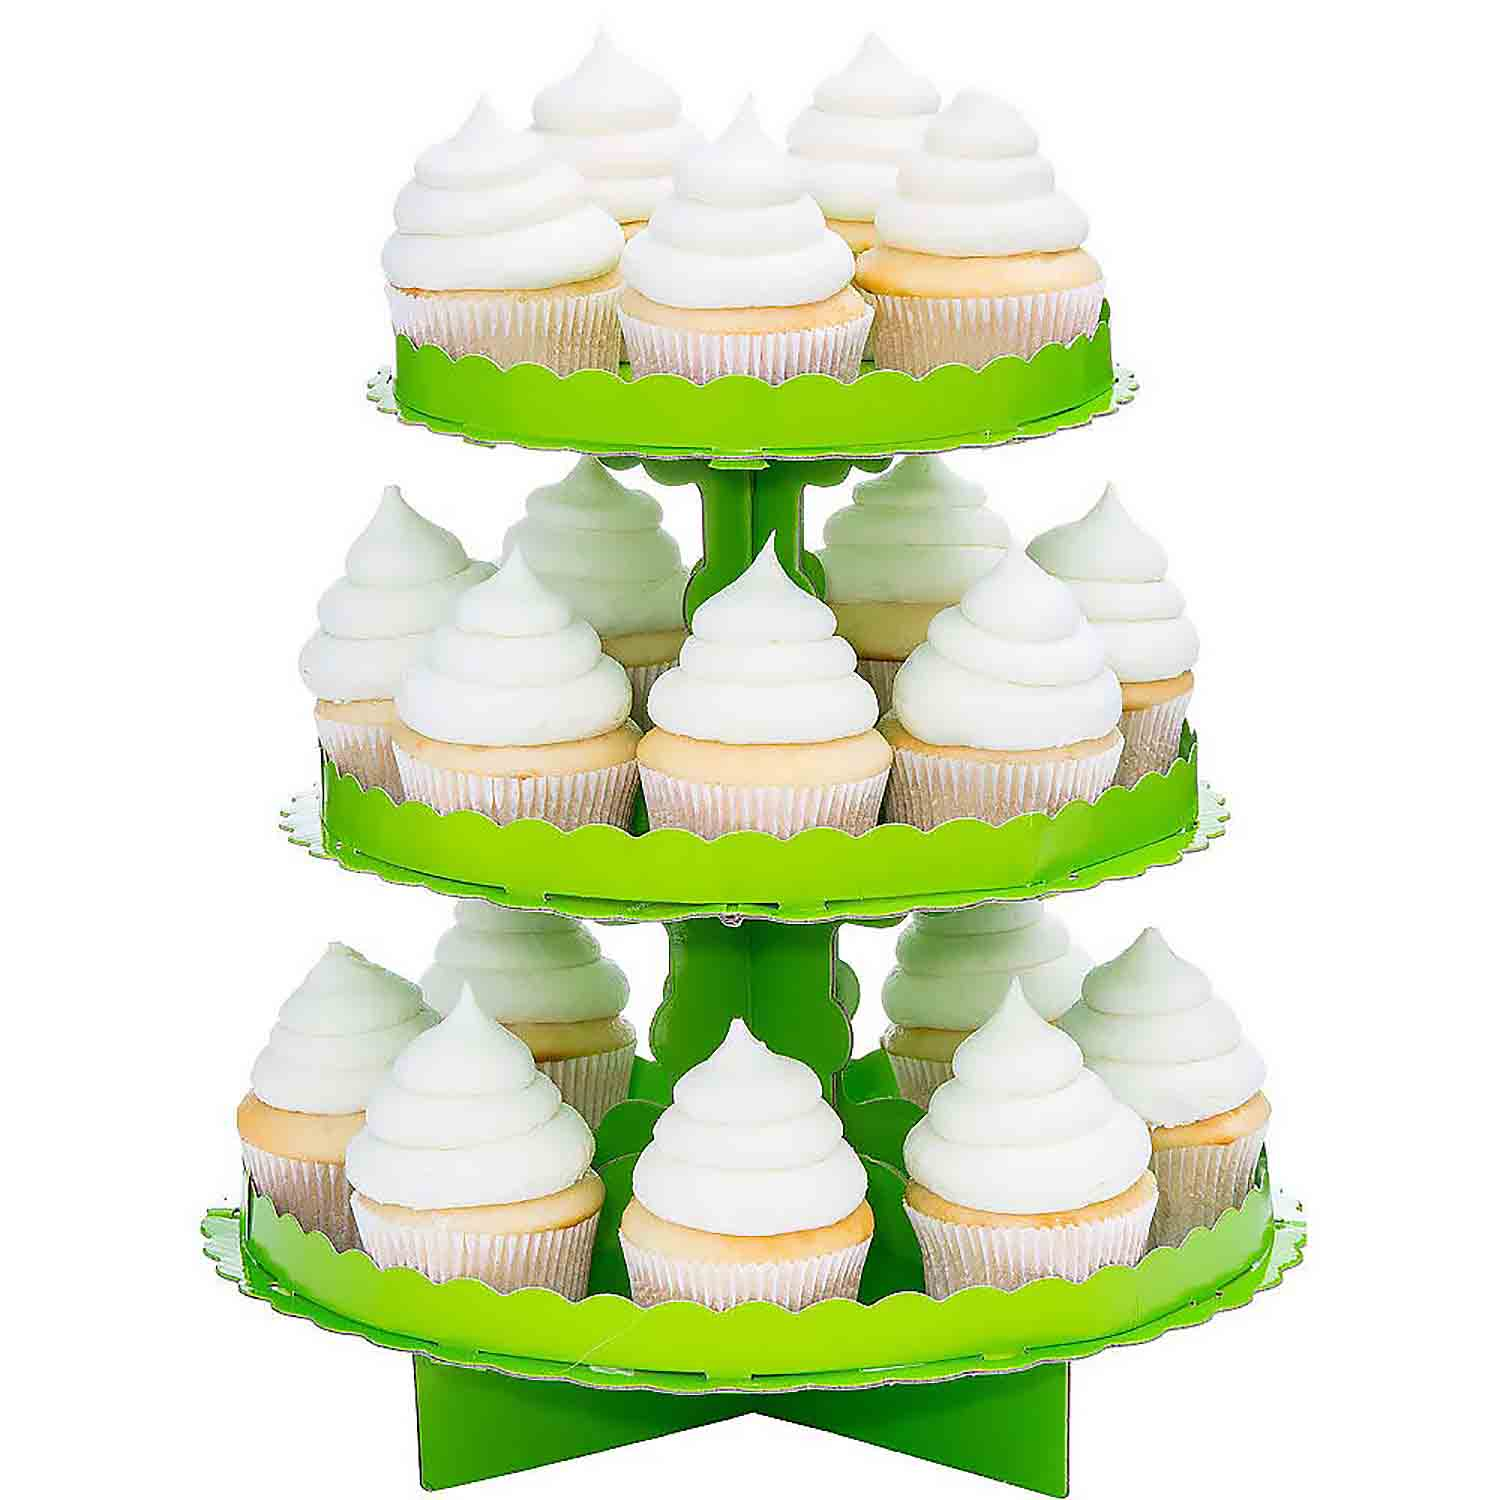 24 X Mixed Easter Cupcake Topper Premium Rice Paper 7518 Other Baking Accessories Baking Accs. & Cake Decorating